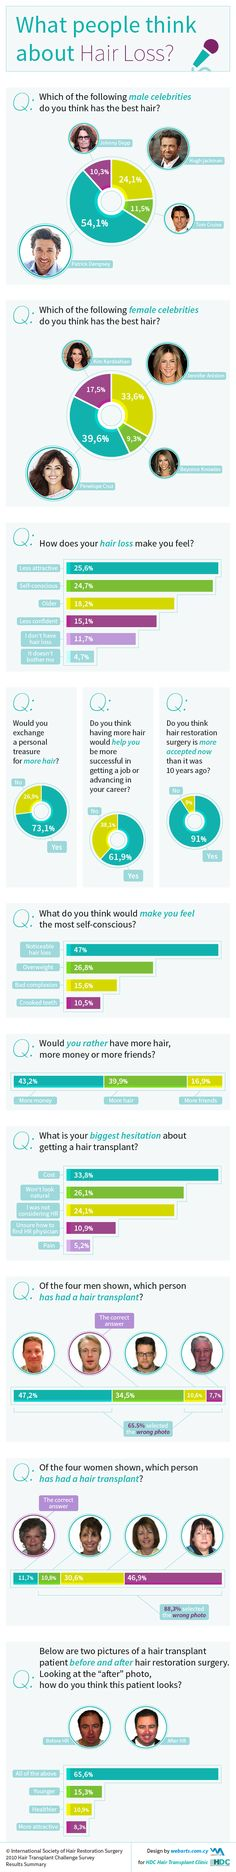 What People Think About Hair Loss?